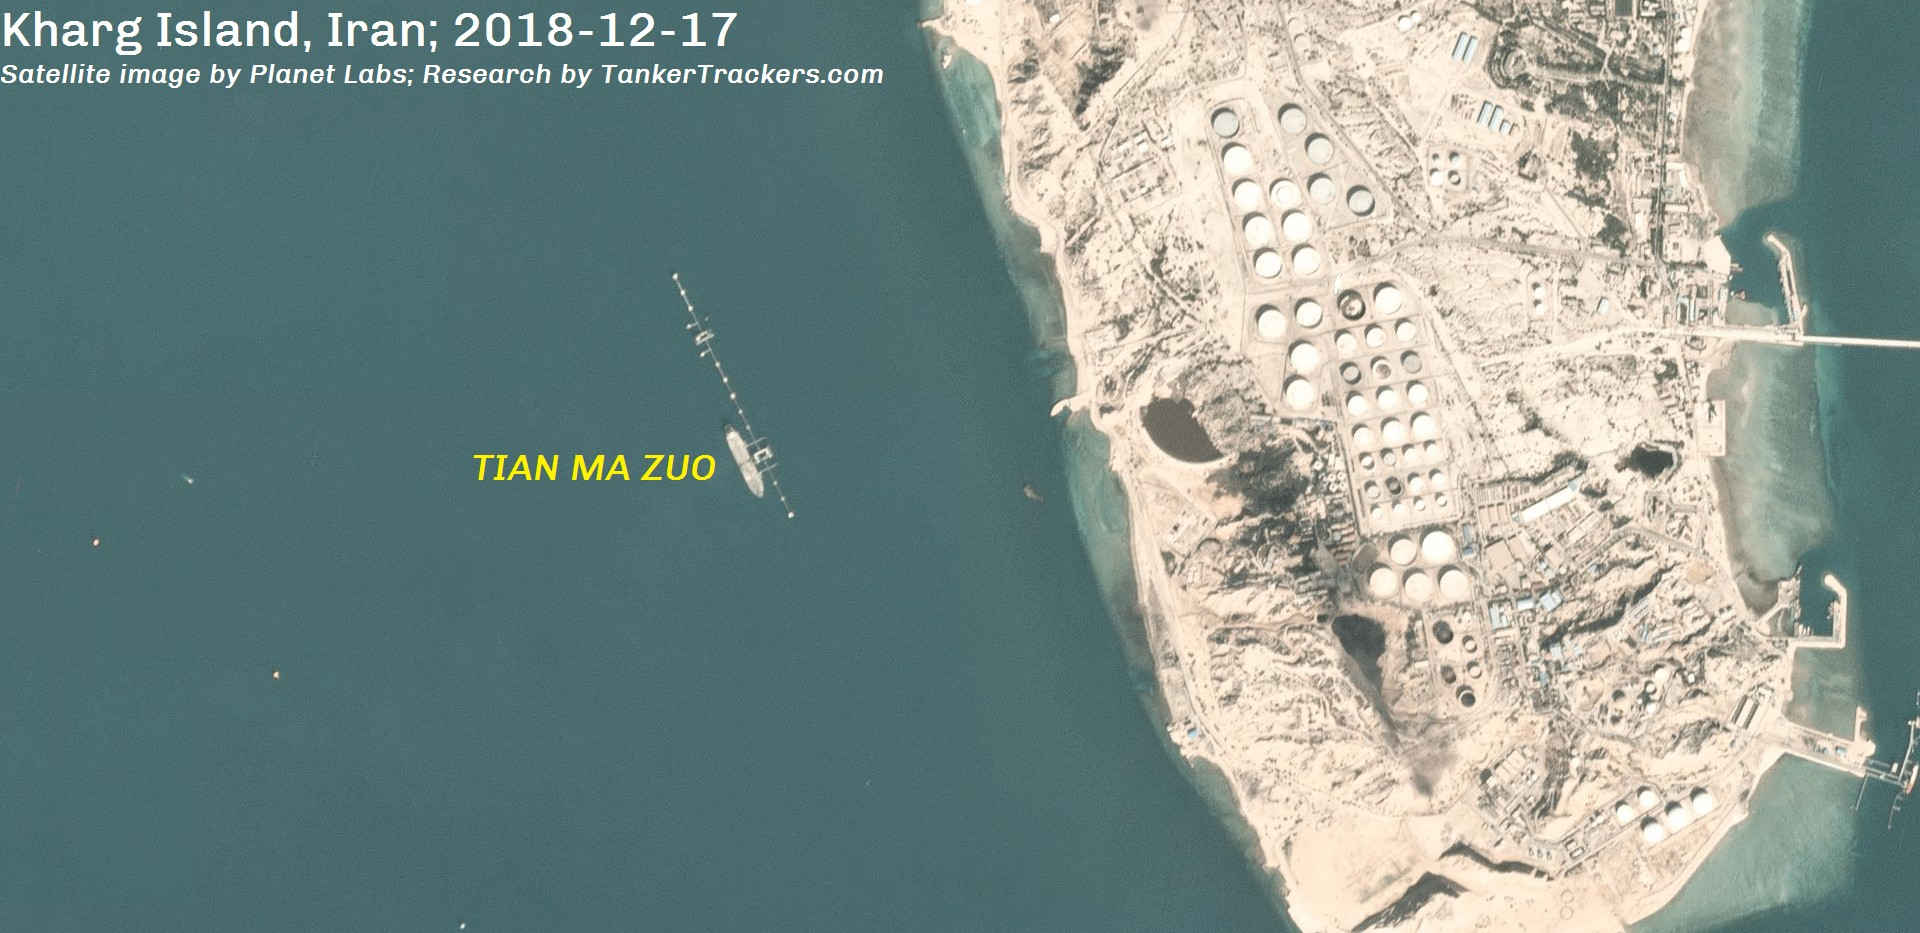 2018-12-17-TIAN-MA-ZUO-at-Kharg